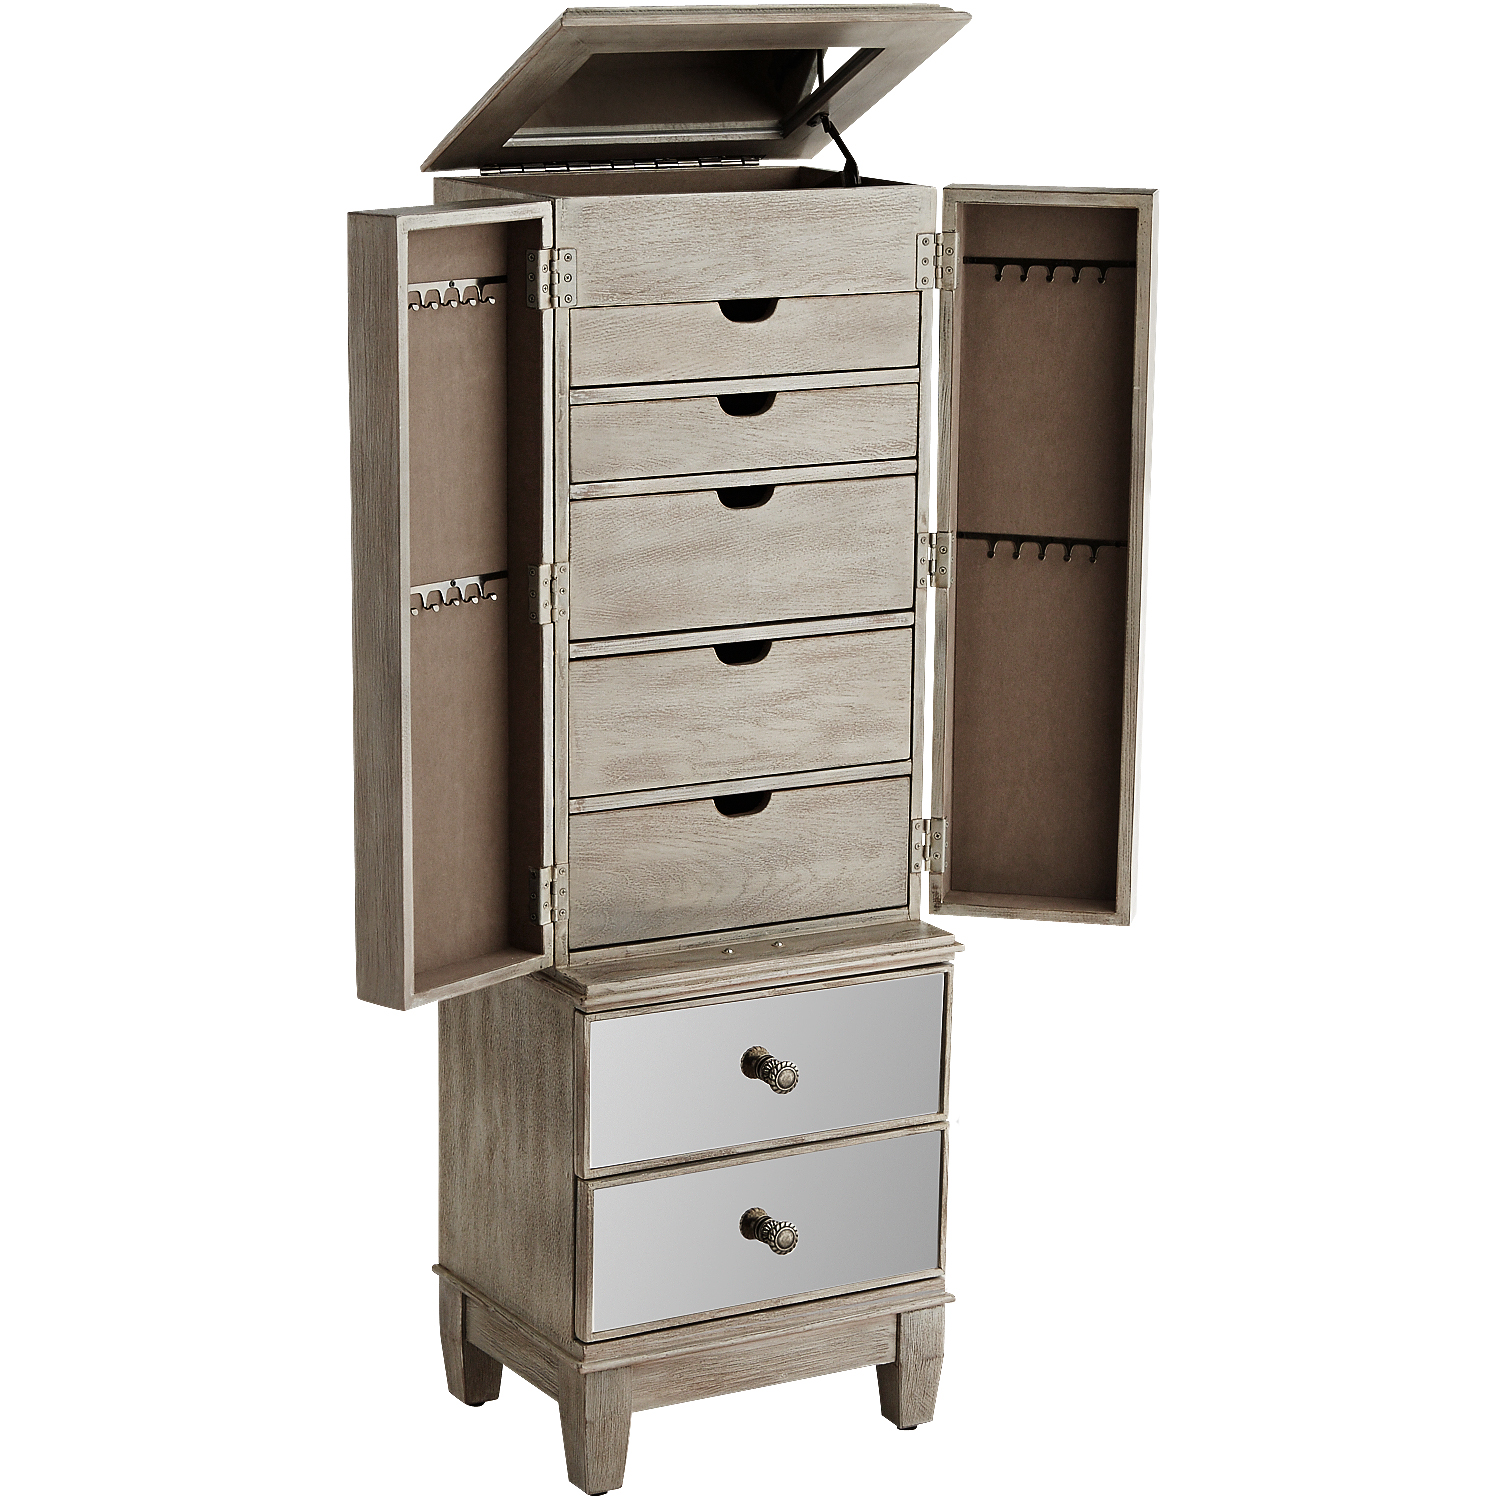 Hayworth Mirrored Jewelry Armoire - Pier1 Imports